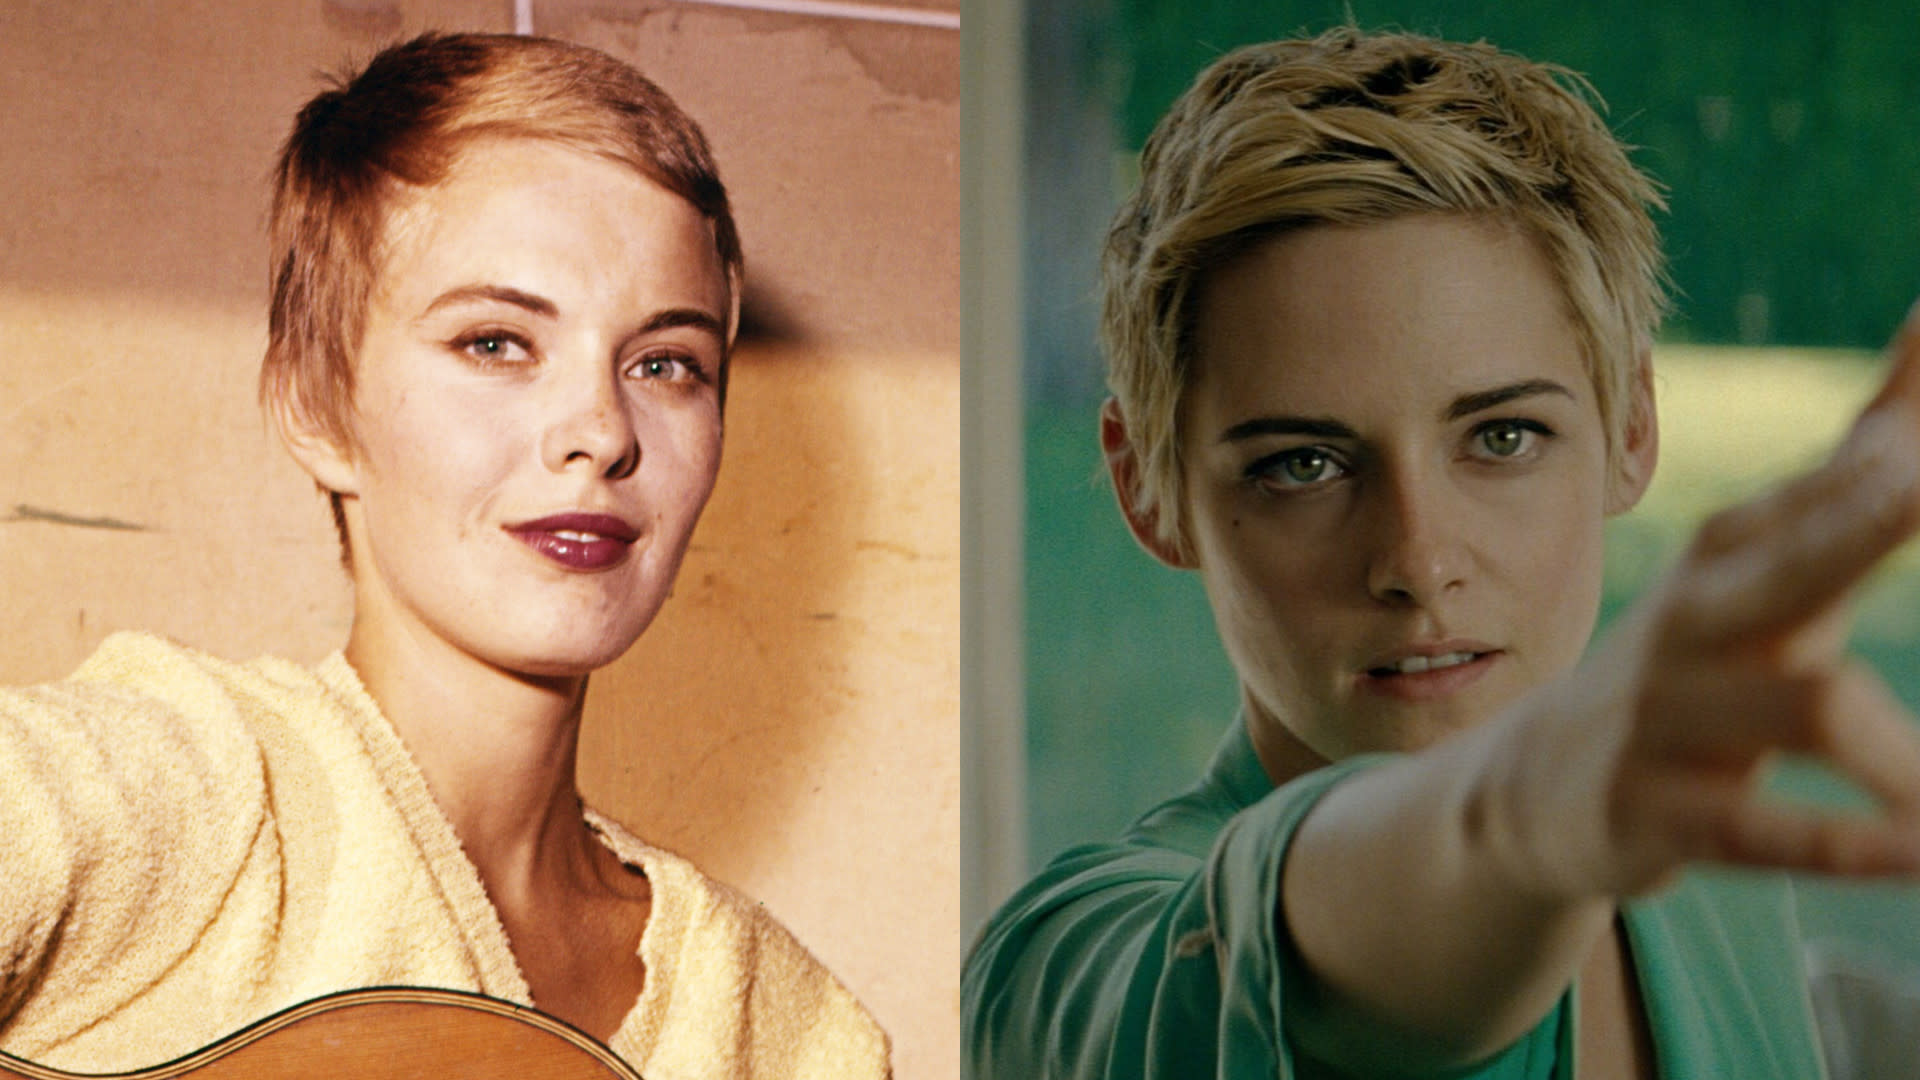 The tragic true story of Jean Seberg, as Kristen Stewart stars in biopic of the French New Wave icon